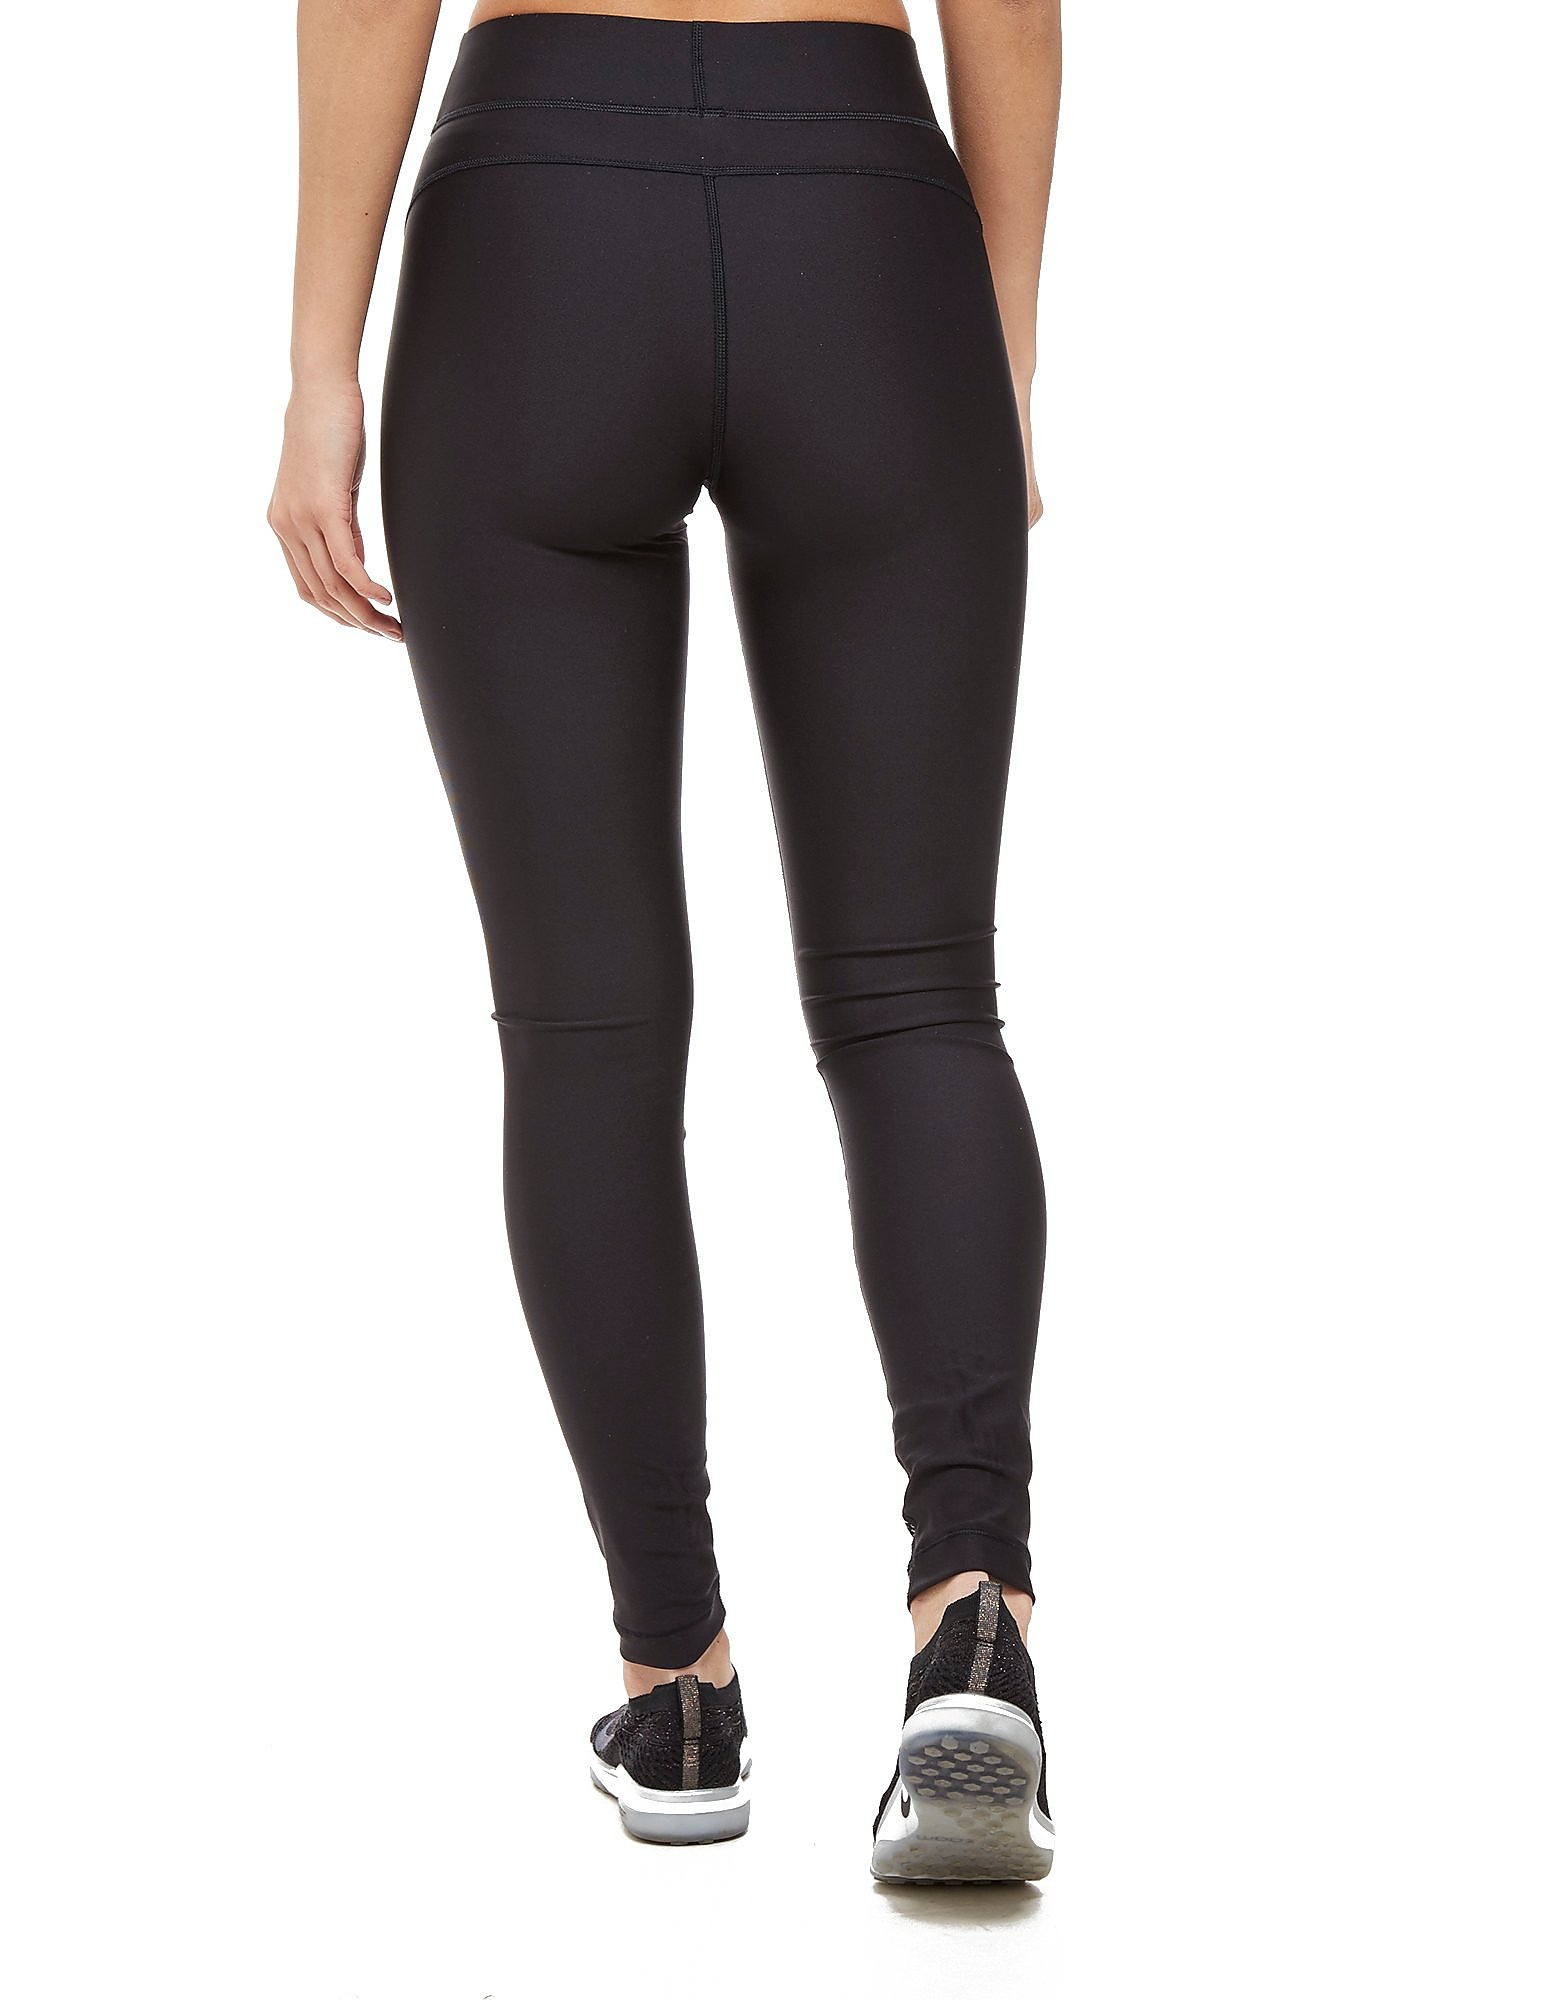 Under Armour Heatgear Print Leggings